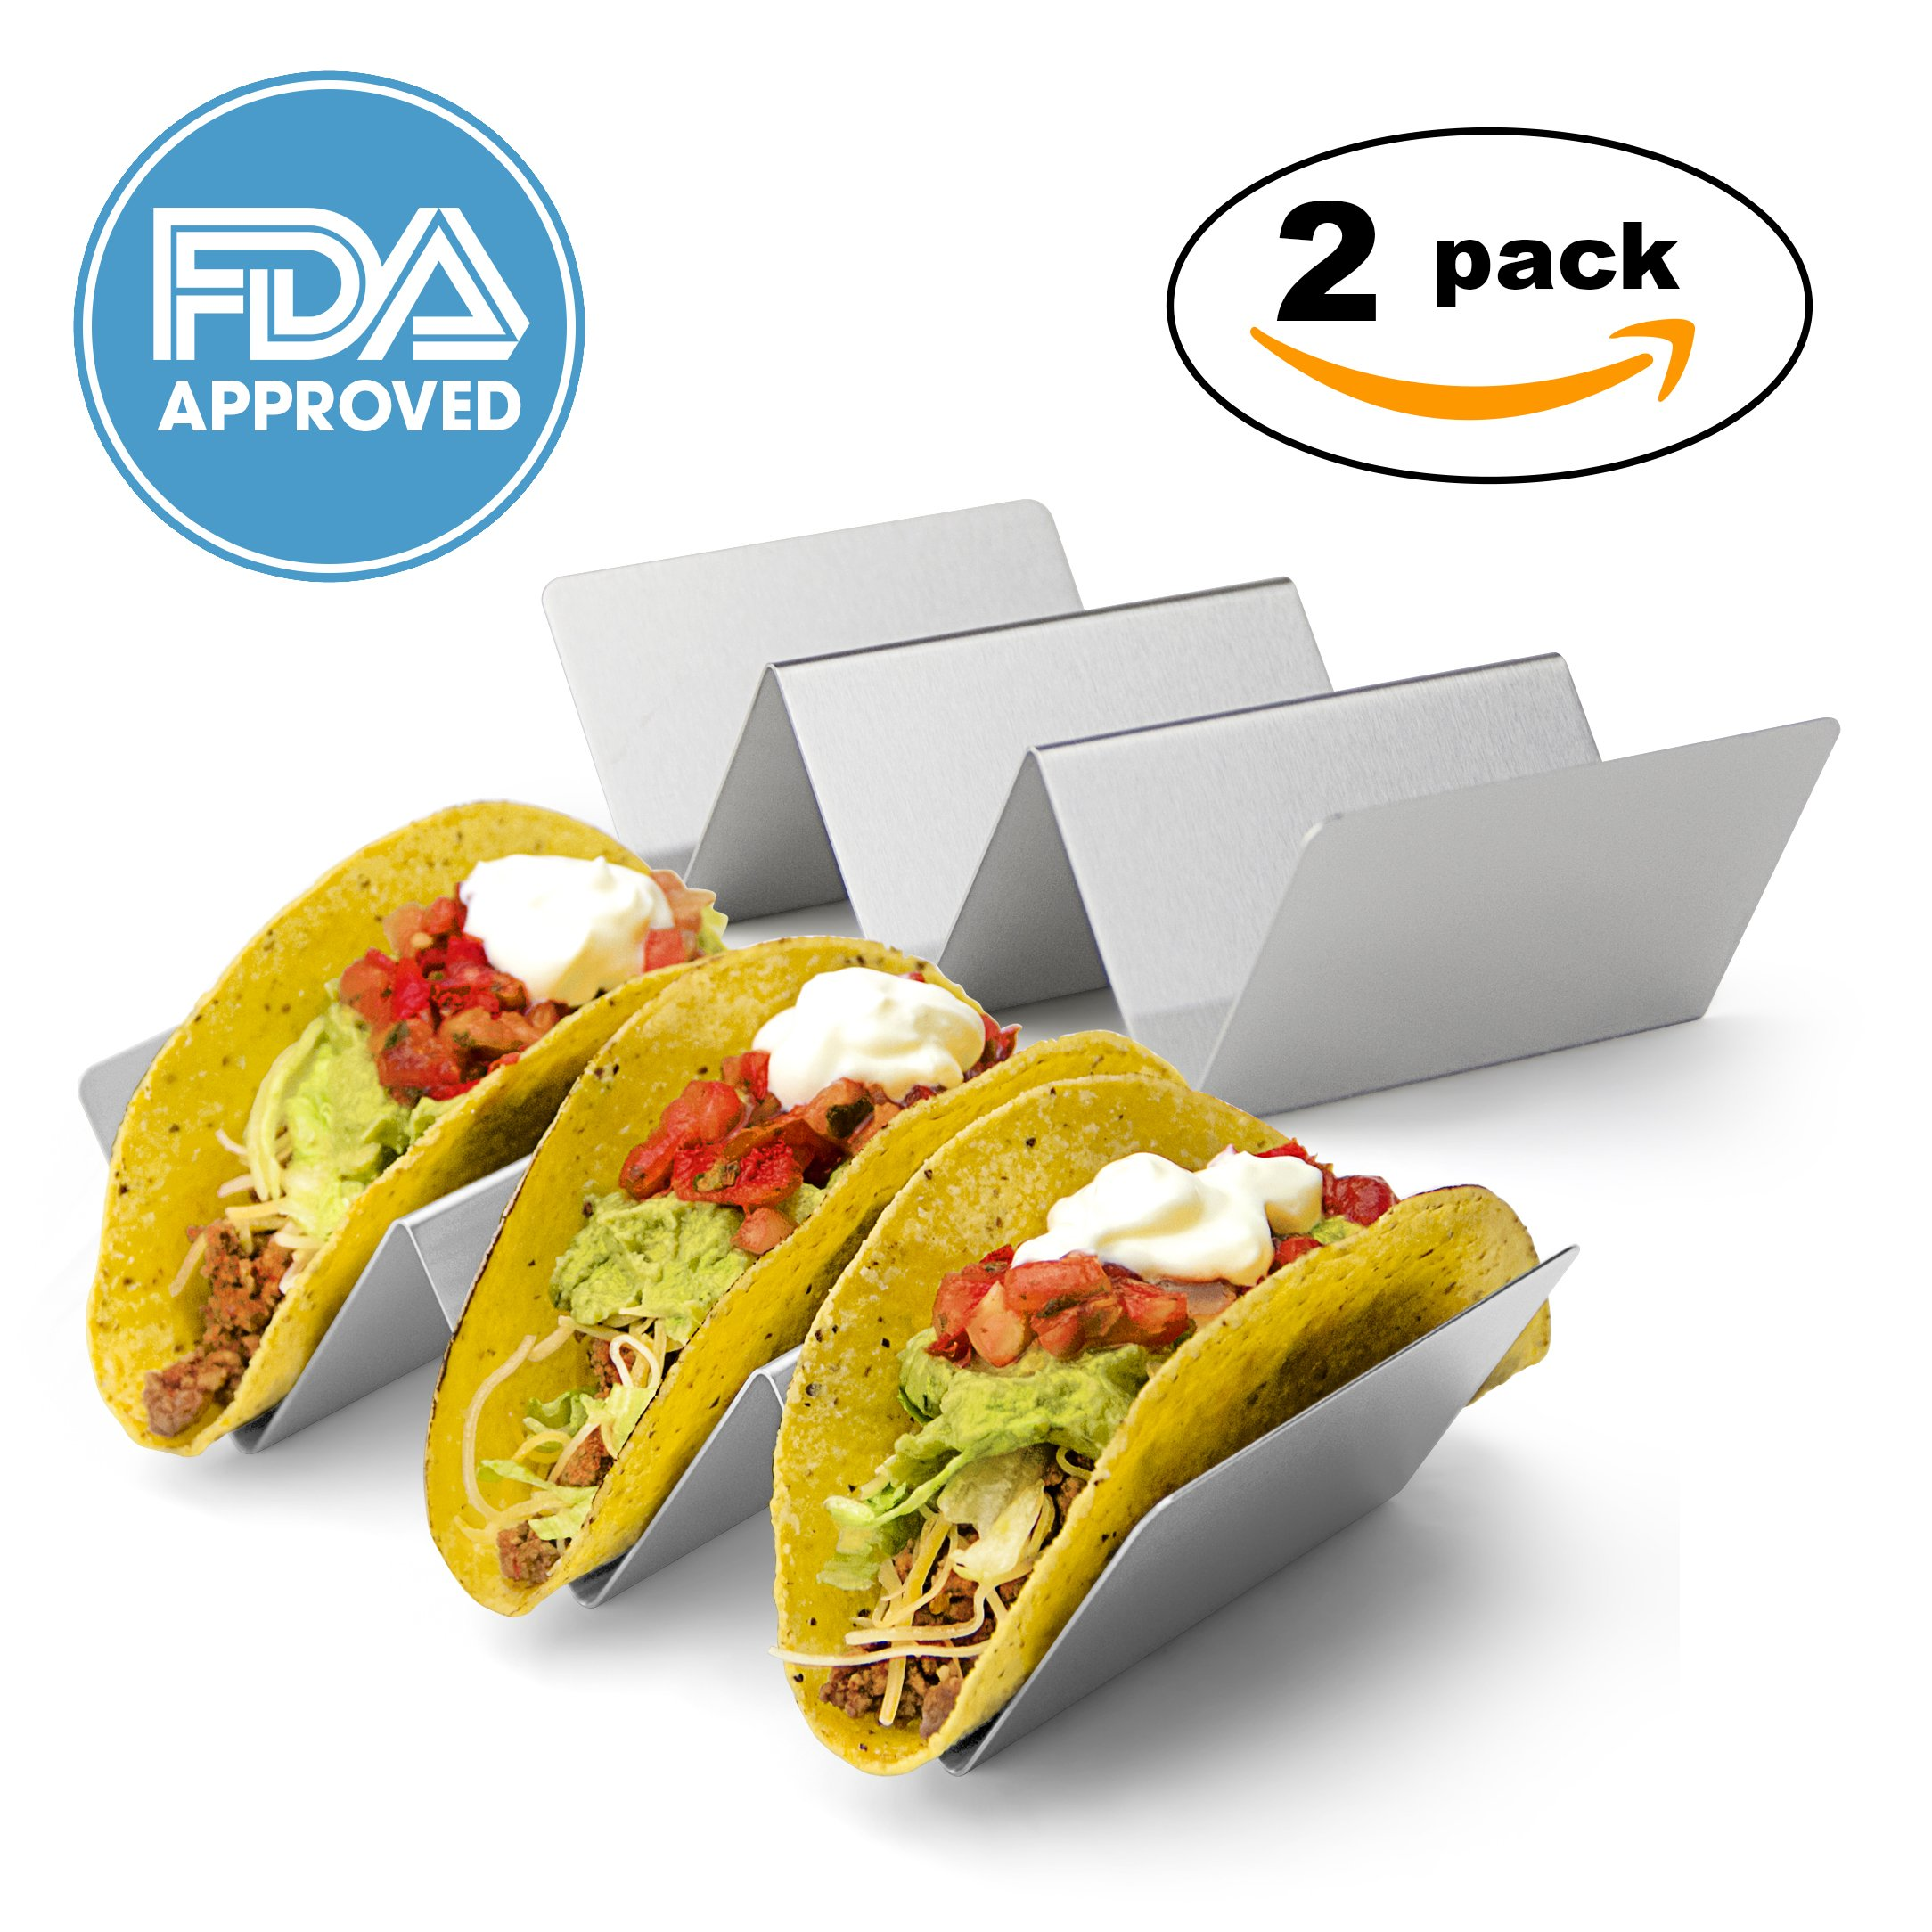 Stainless Steel Taco Holder Set of 2 - Taco Rack Holds Three Tacos - Taco Holders for Baking, Grilling Hard or Soft Shells Taco Stand - (2 Rack)